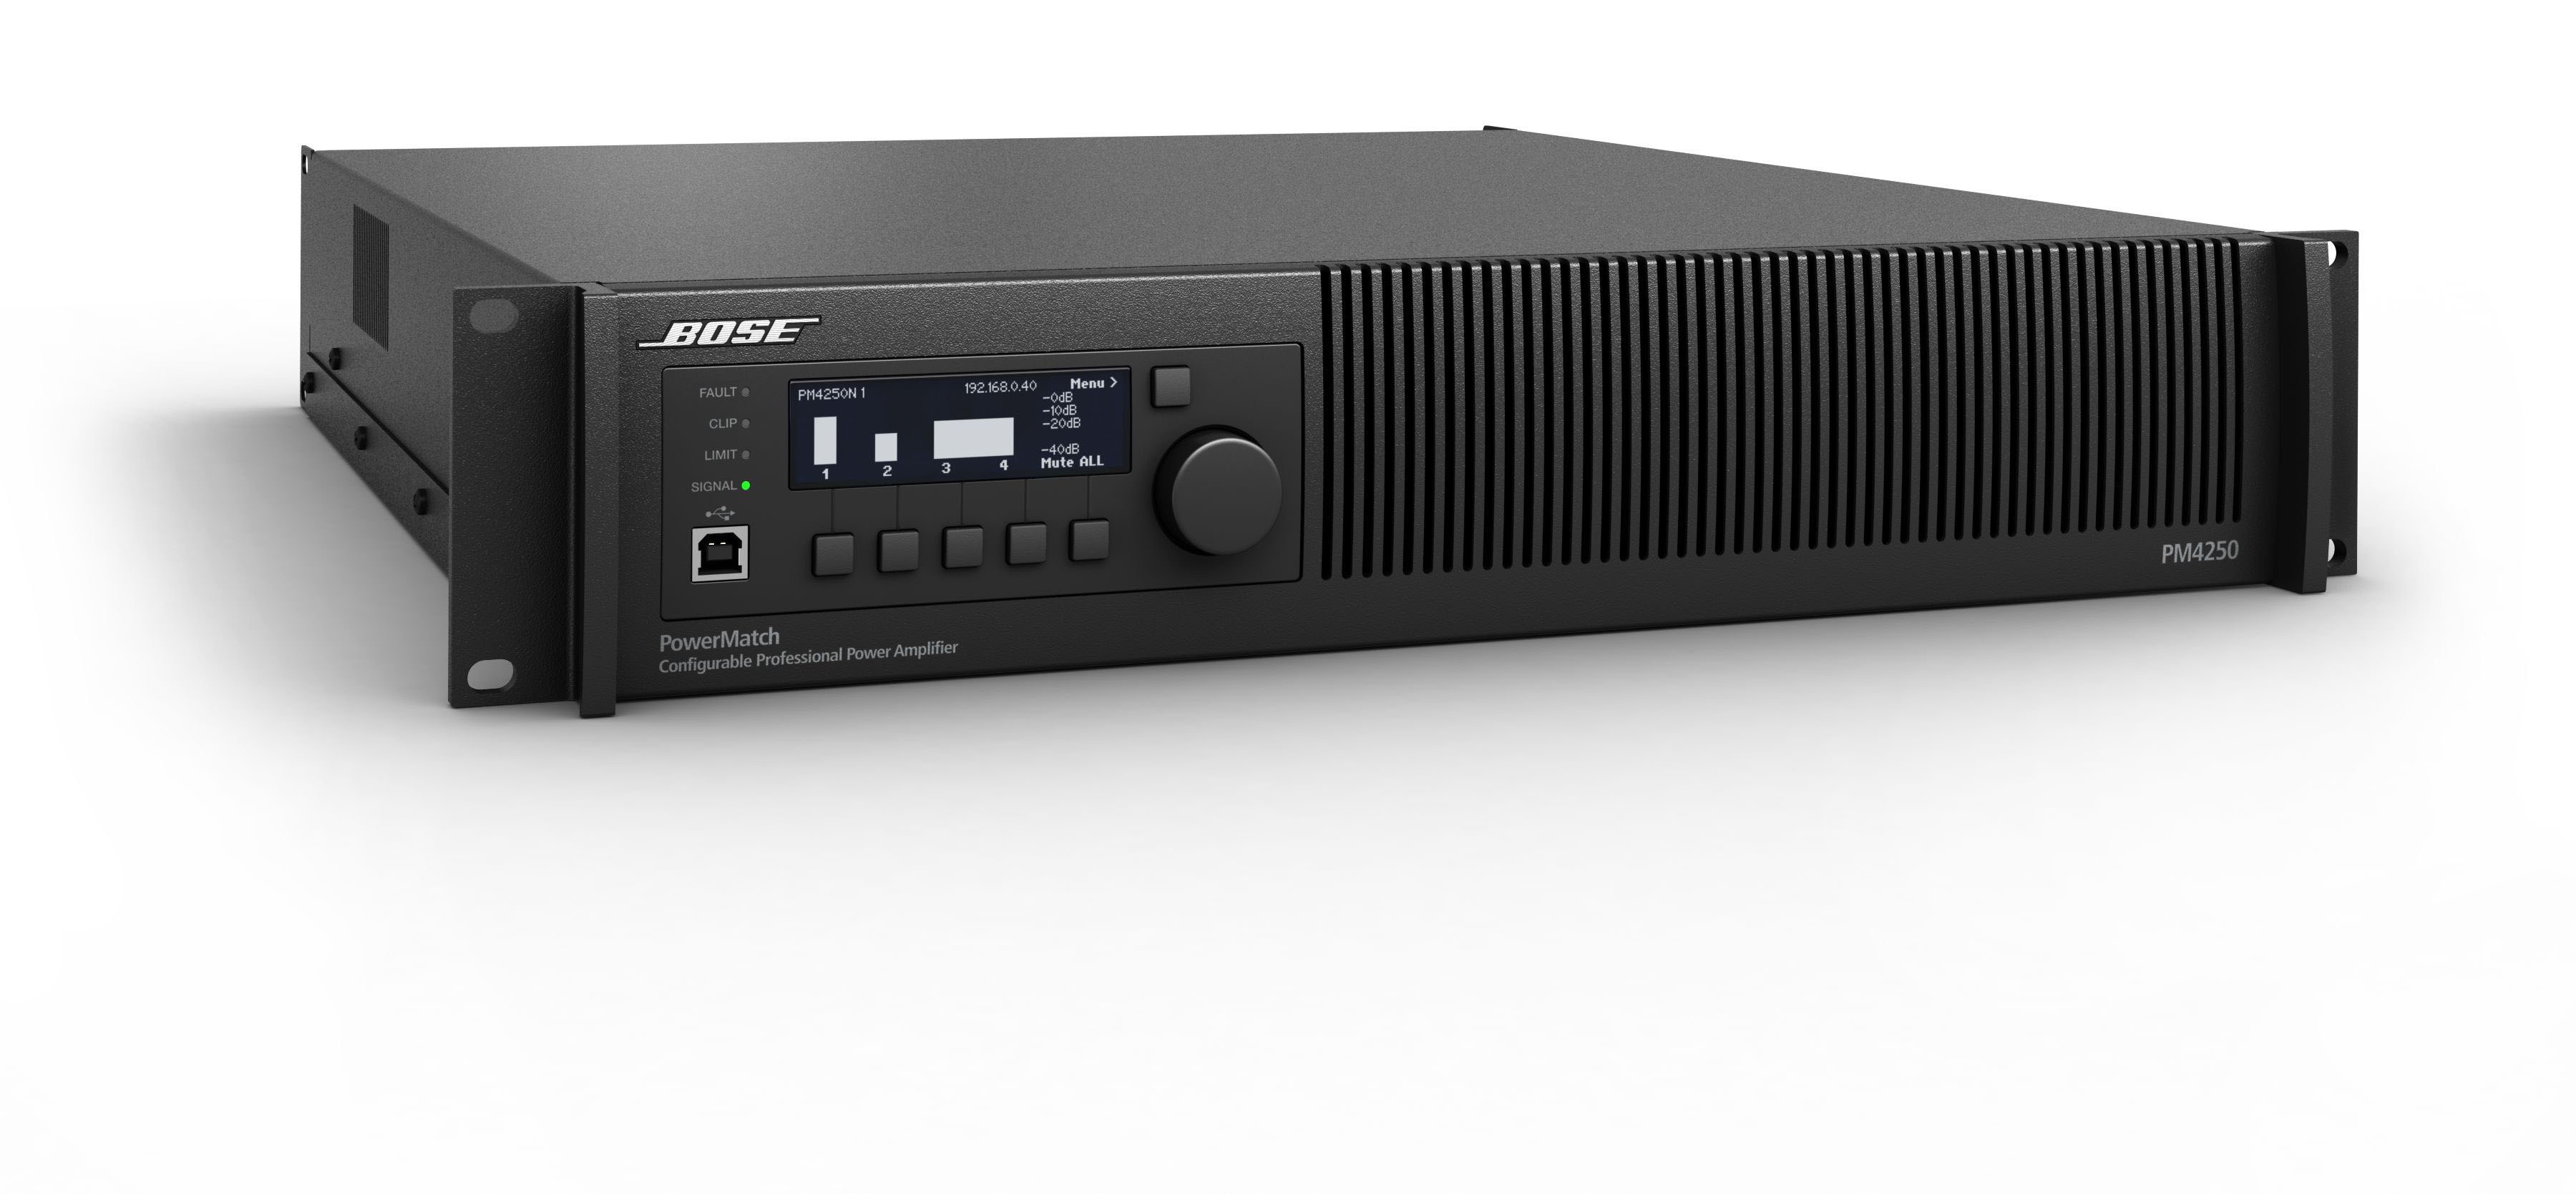 Présentation de l'amplificateur Bose PowerMatch PM4250N ControlSound Division professionnelle